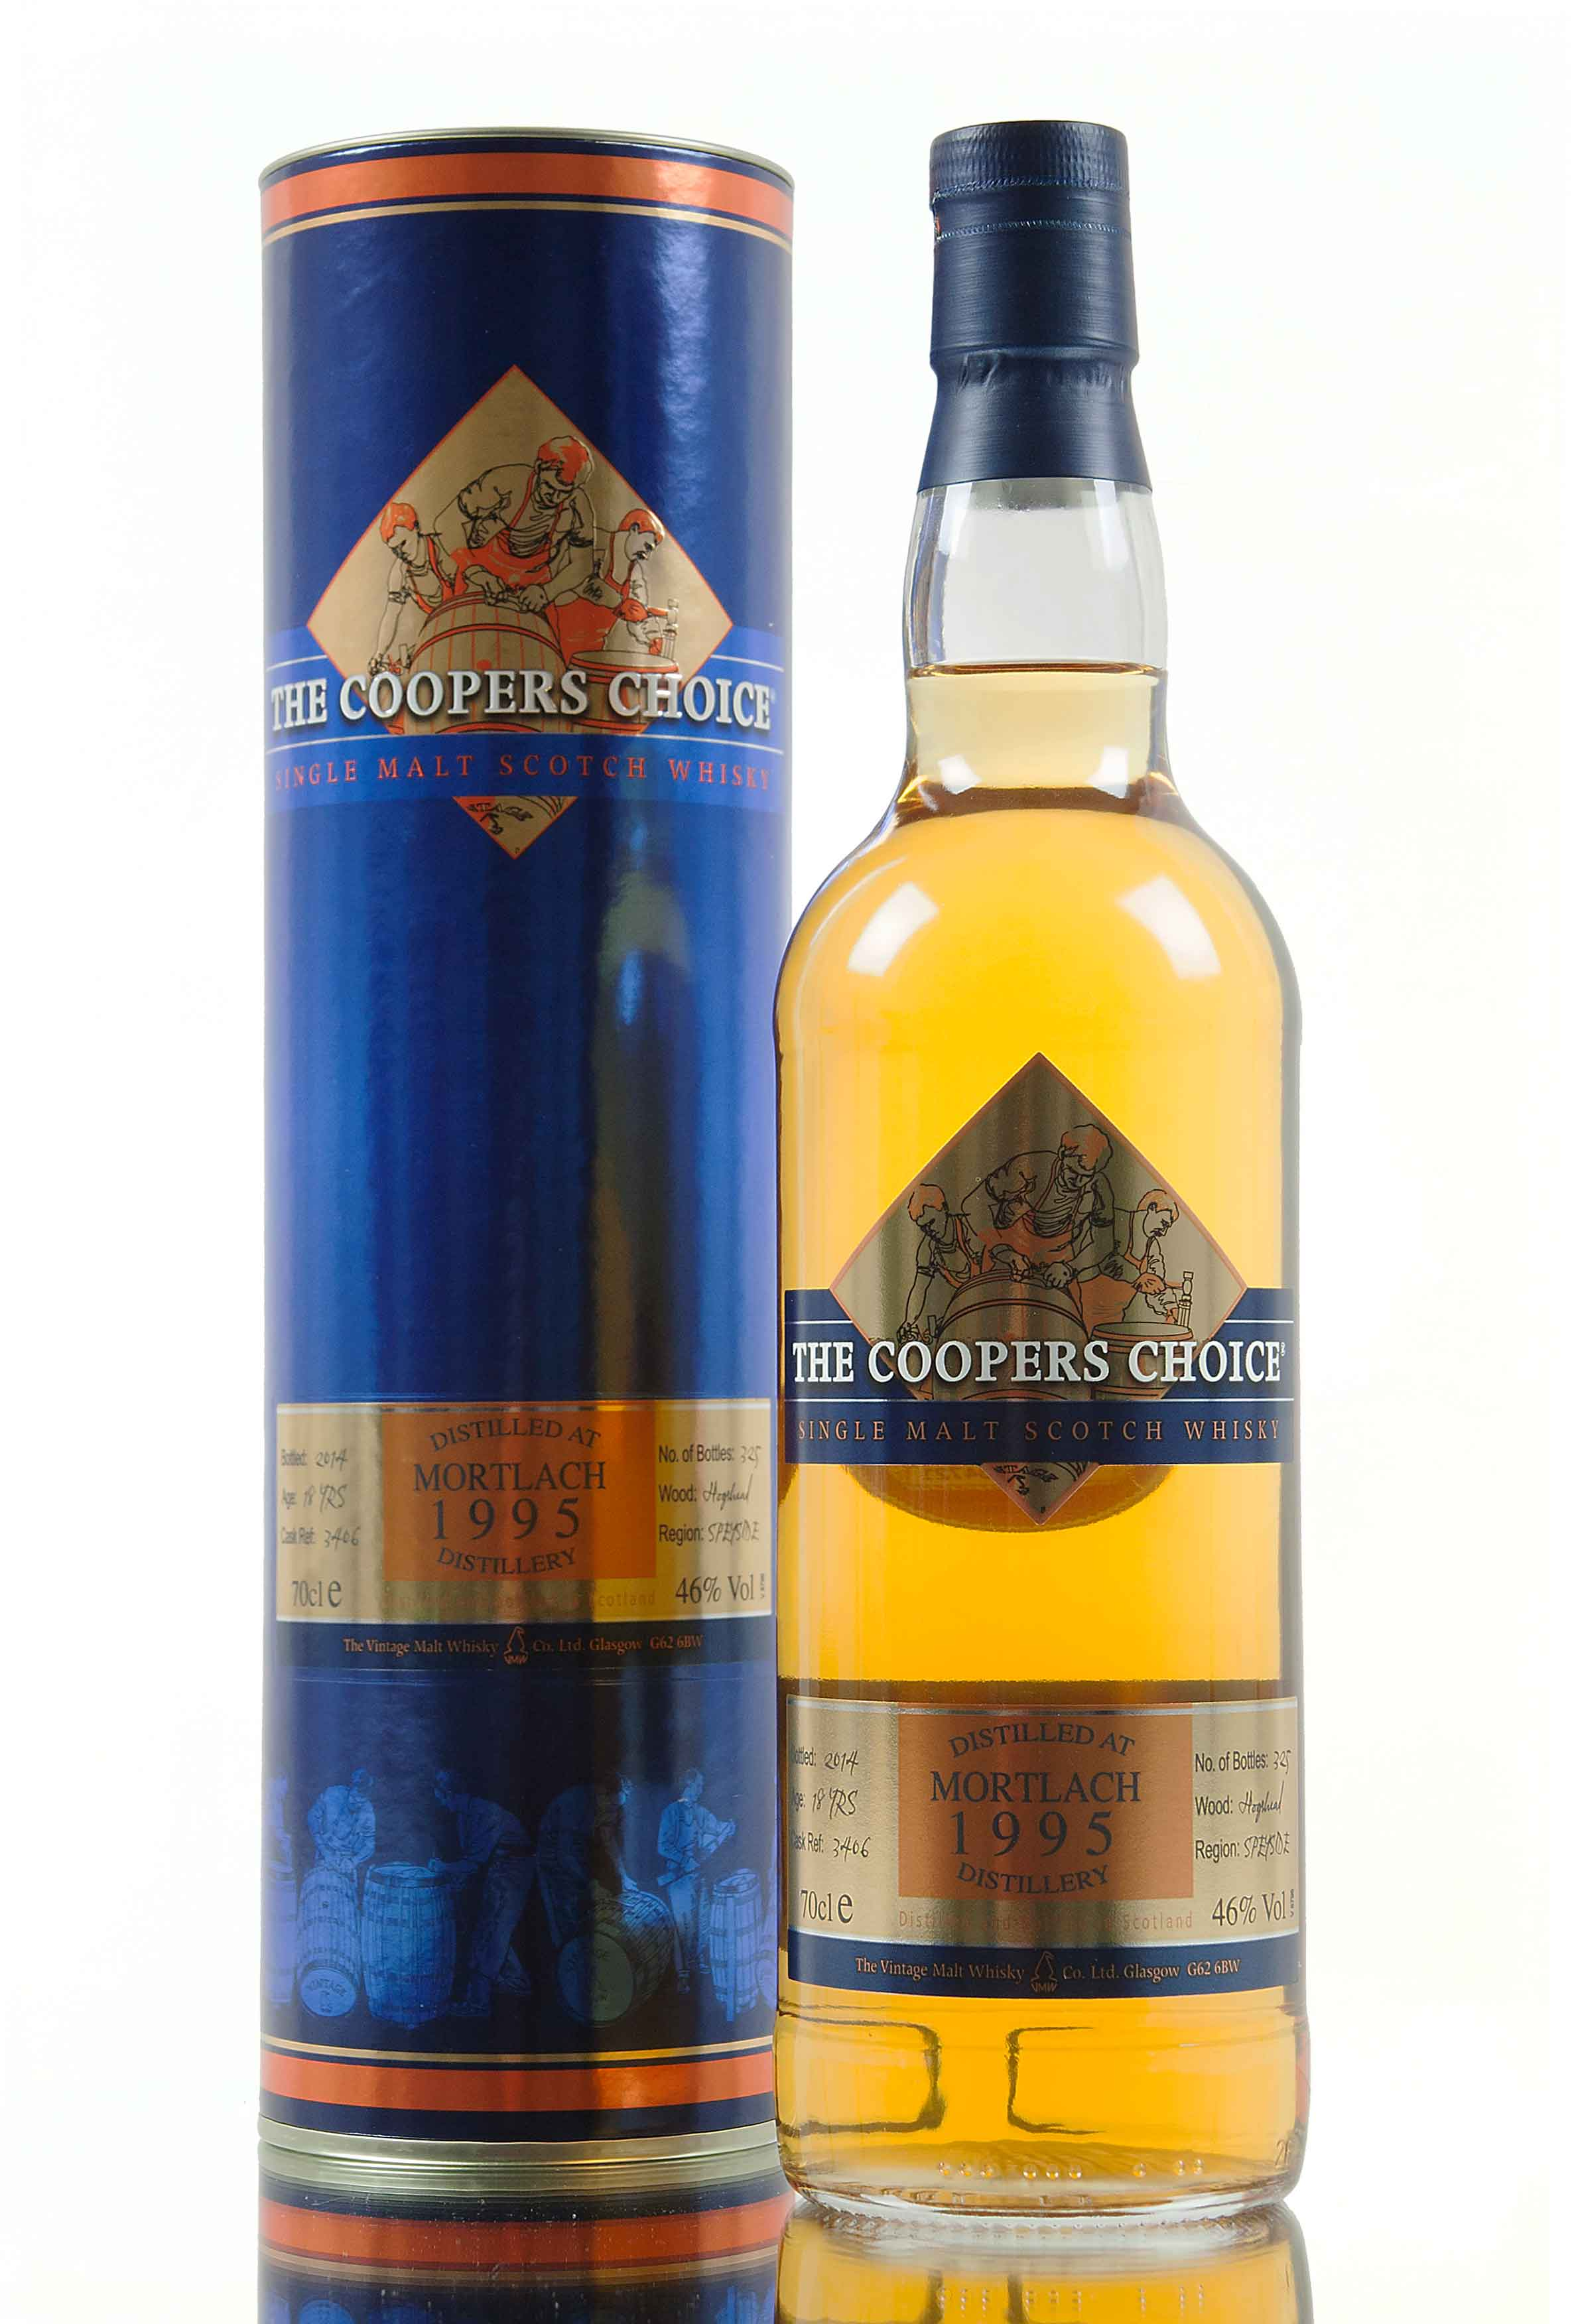 Mortlach 18 Year Old - 1995 / The Coopers Choice / Cask 3406